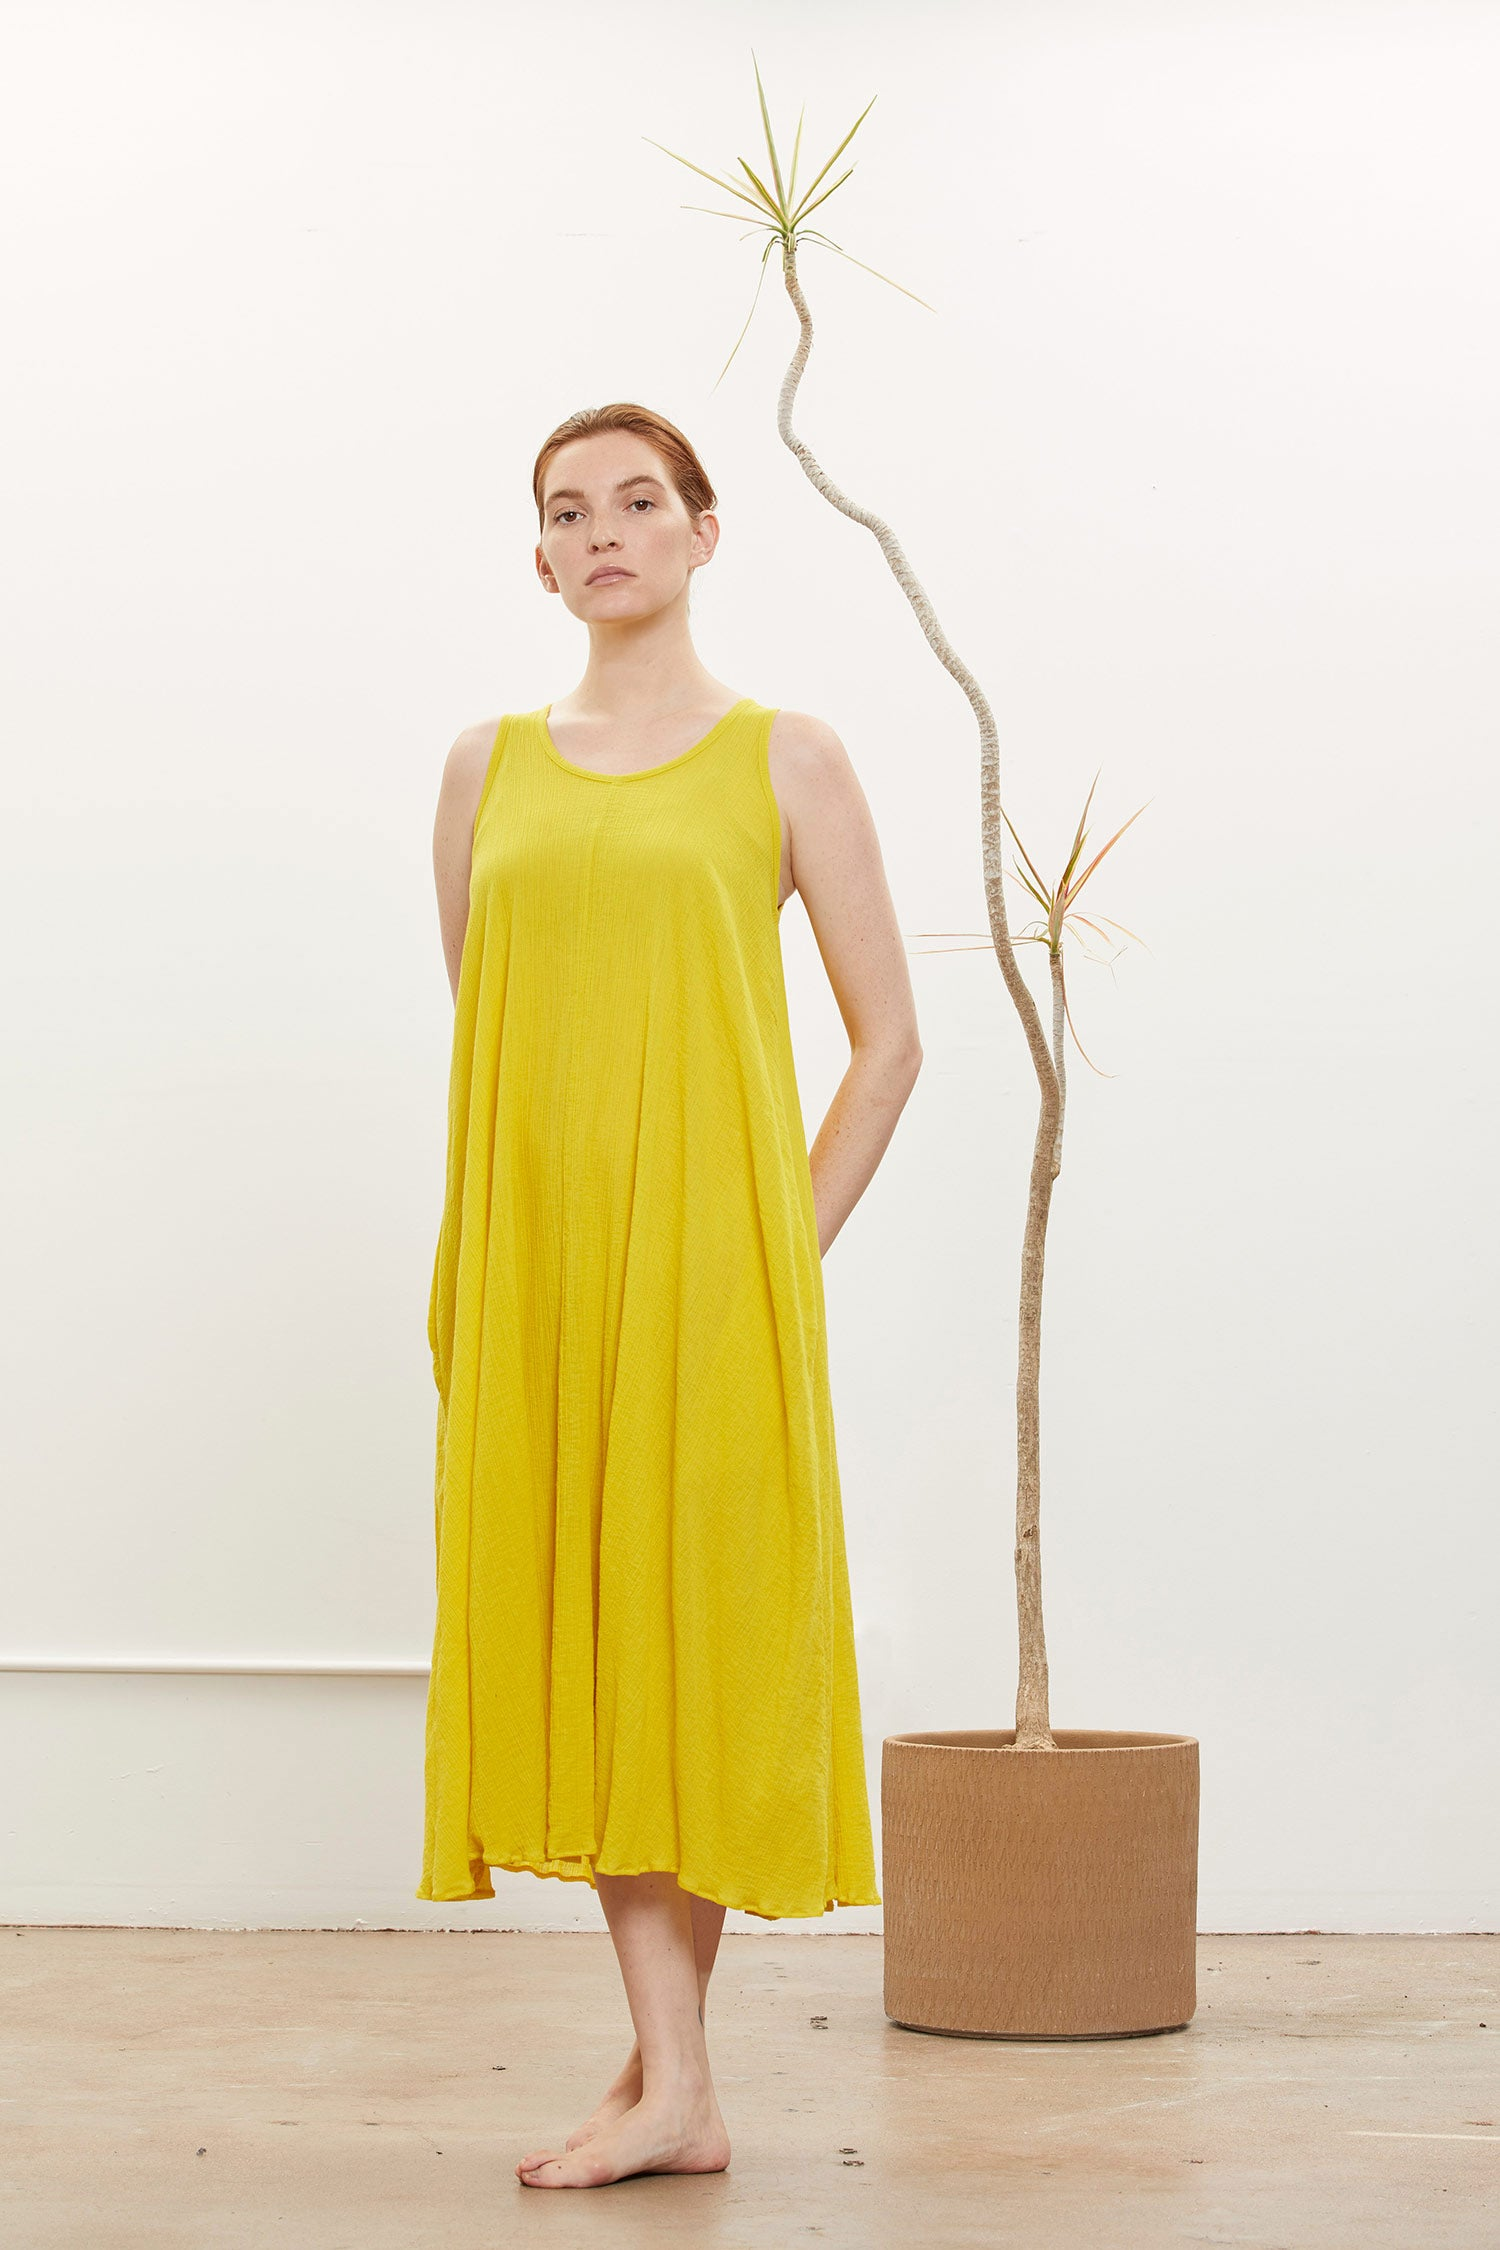 FLORAL DRESS / PG-FD26 / YELLOW